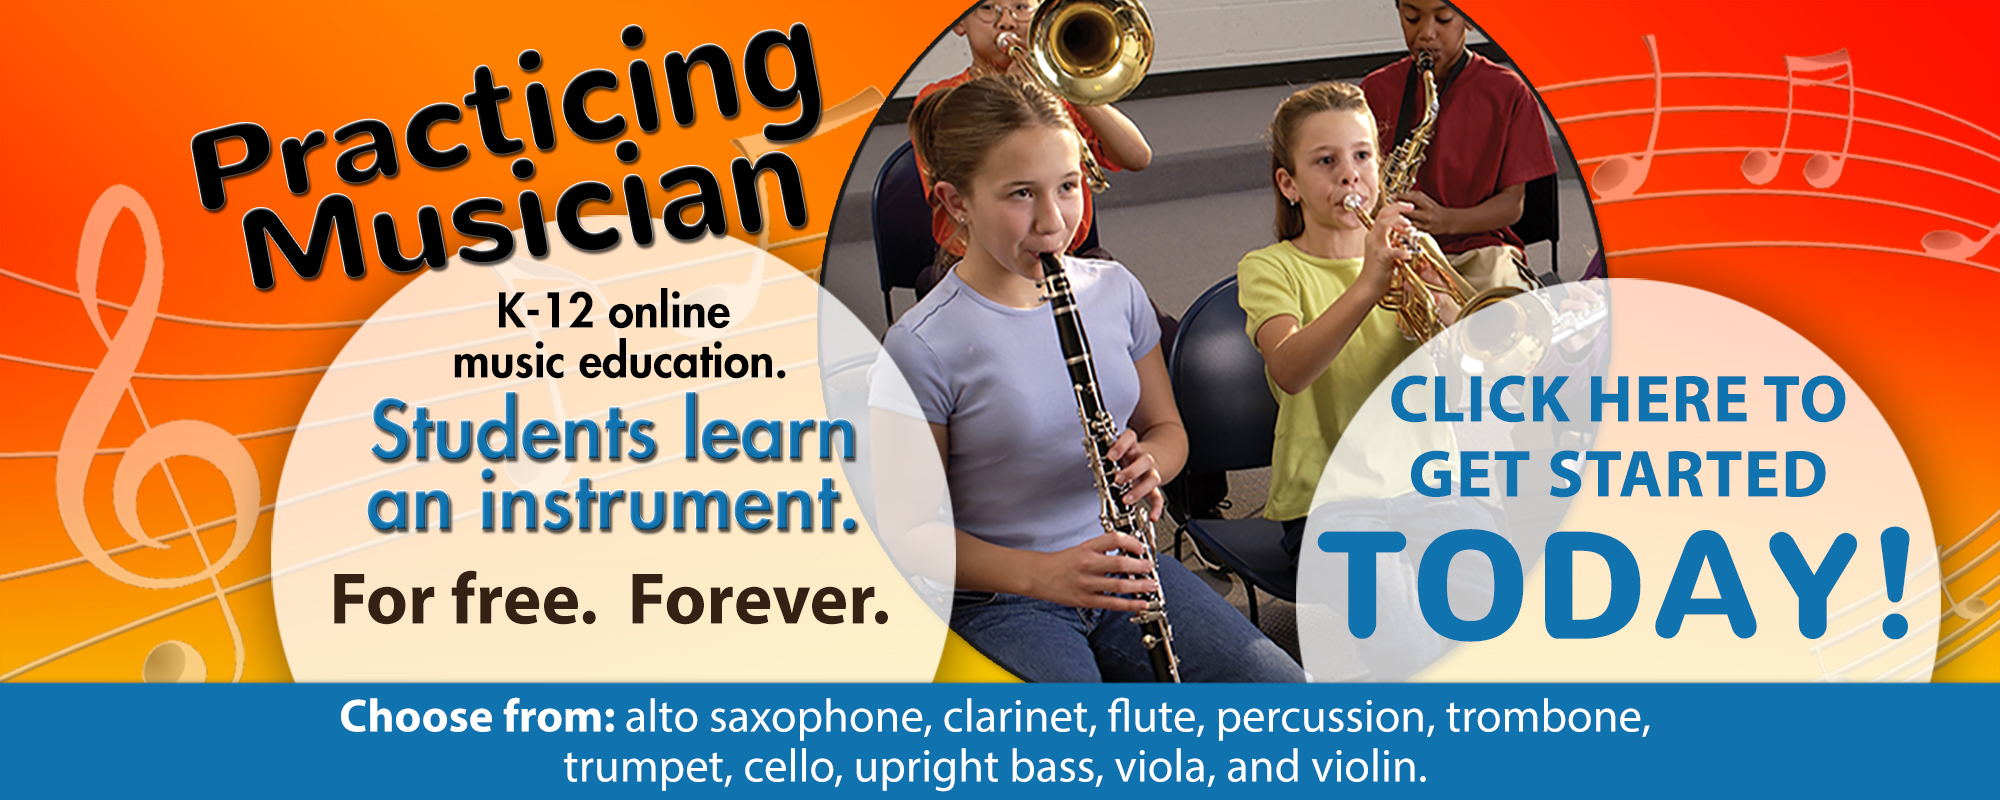 Practicing Musician Online E-learning